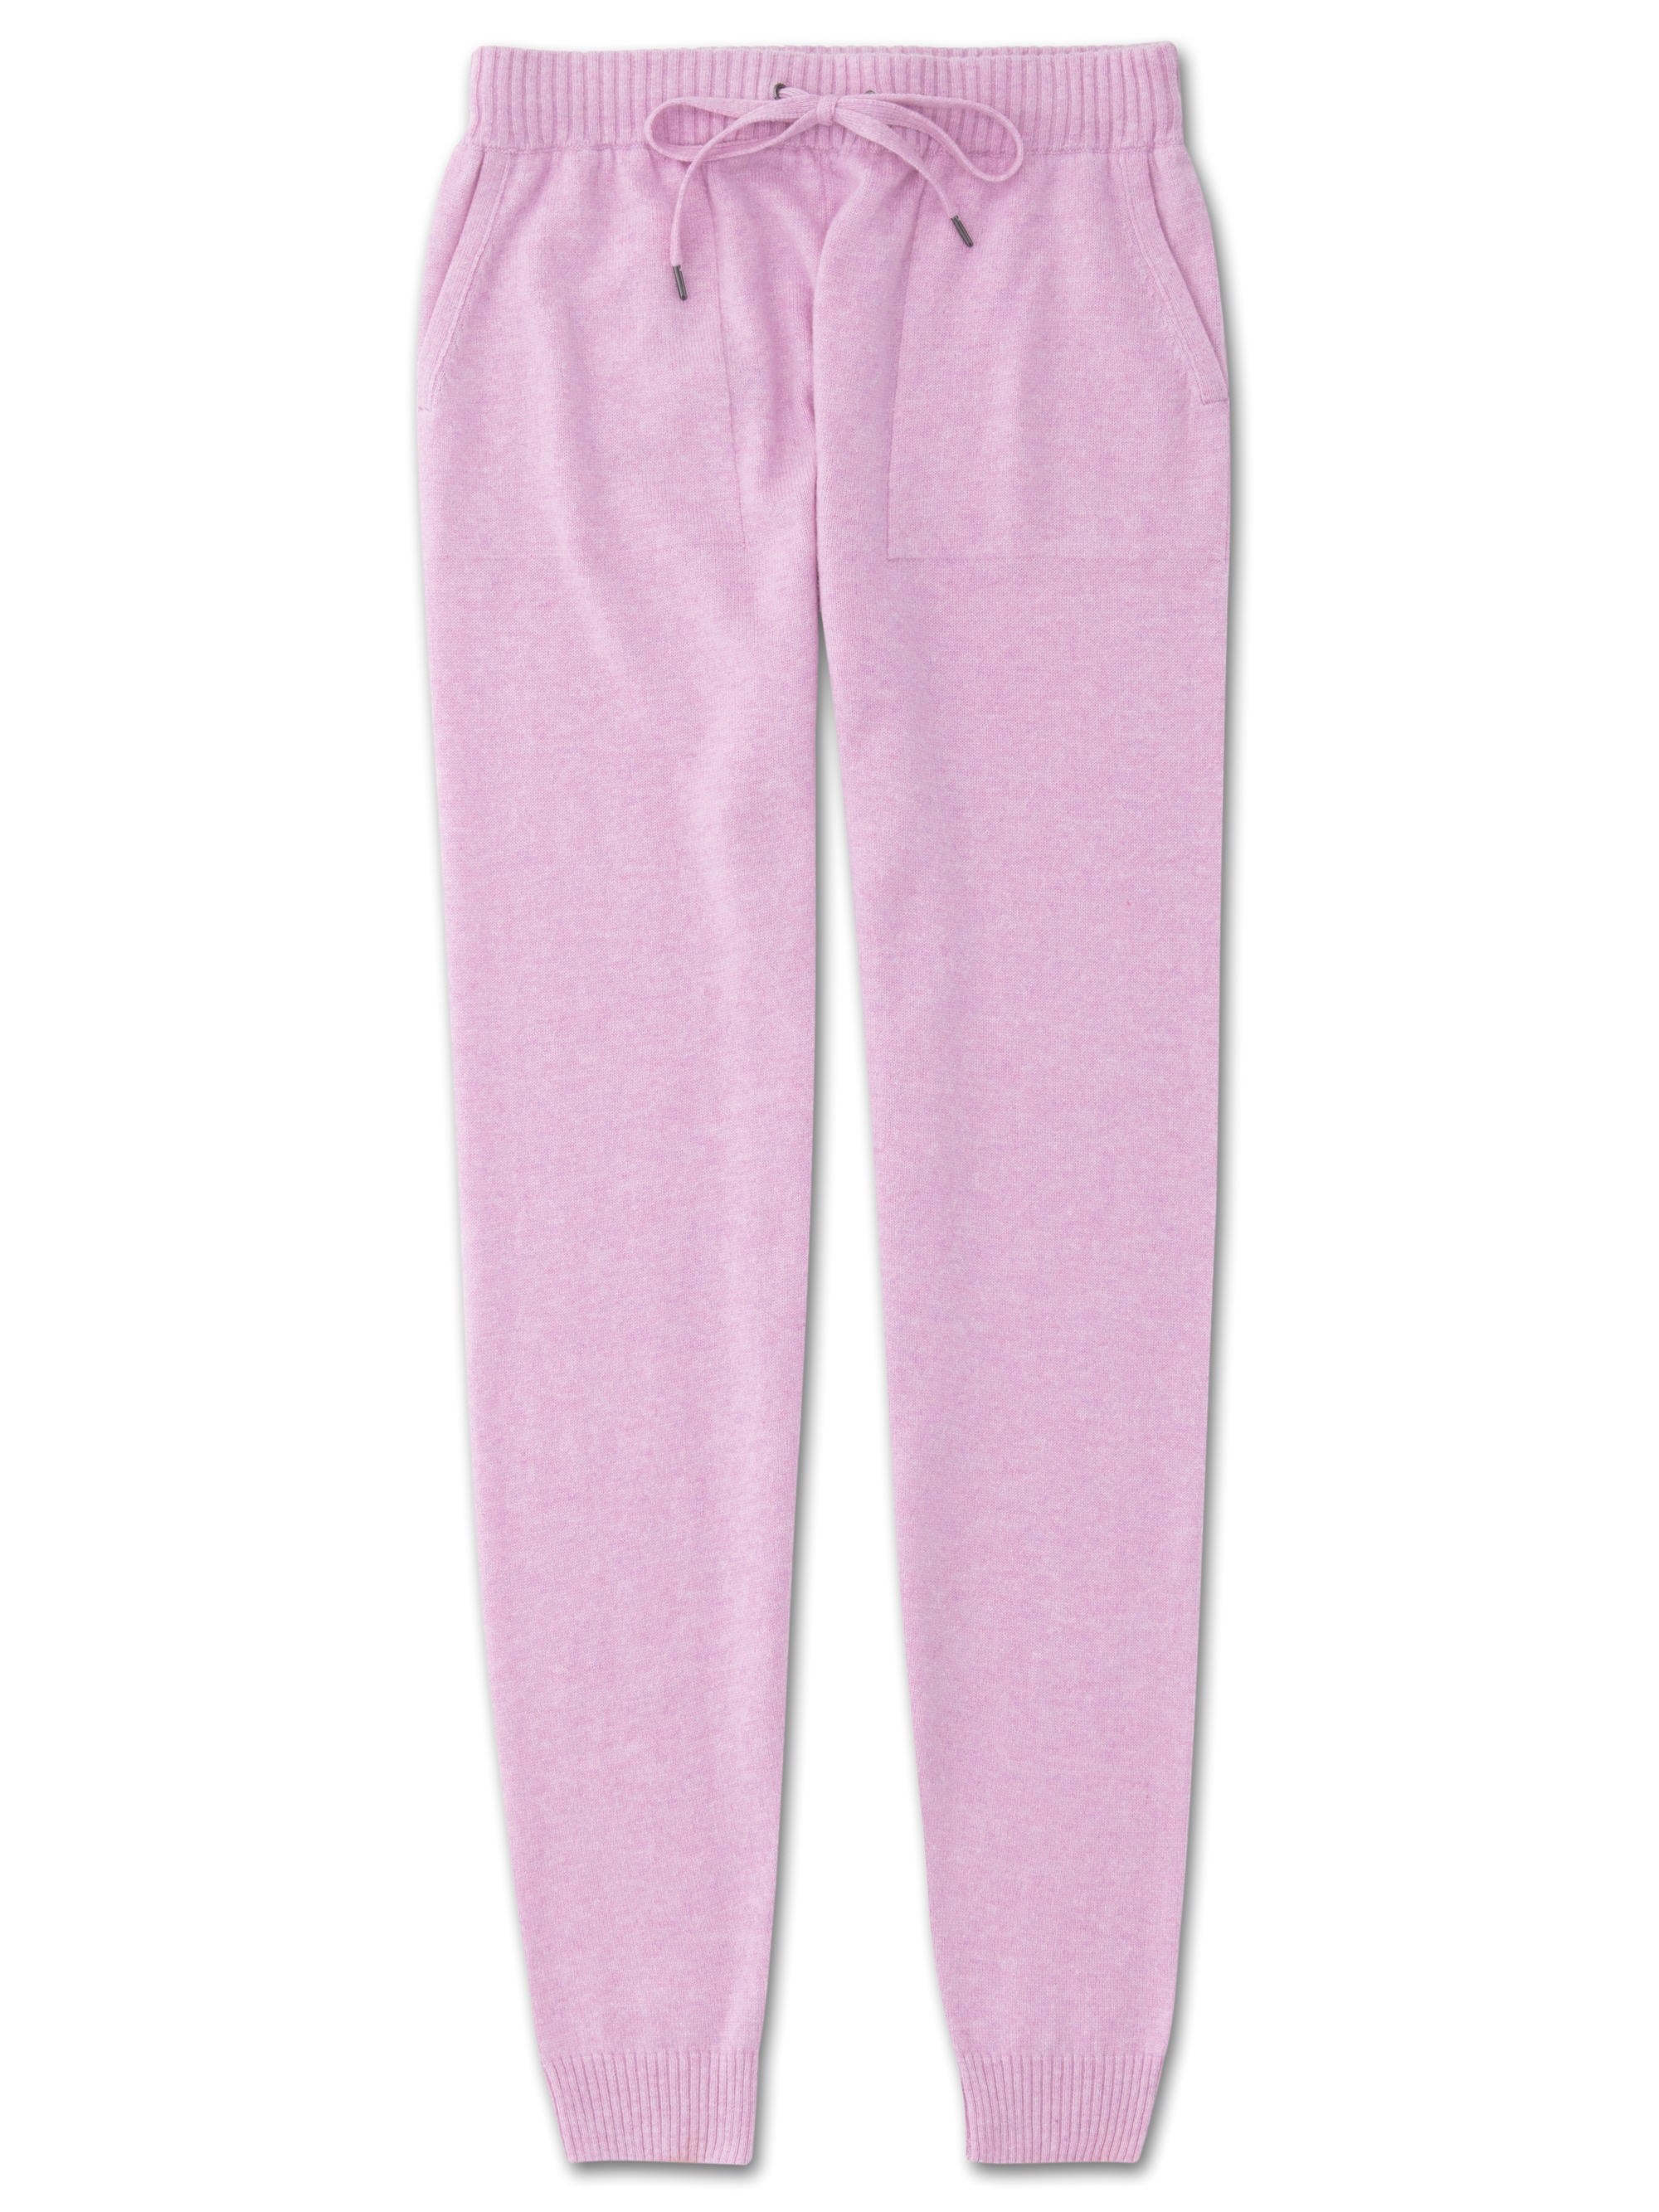 largest selection of 2019 purchase genuine on feet at Women's Cashmere Track Pants Finley Pure Cashmere Lilac